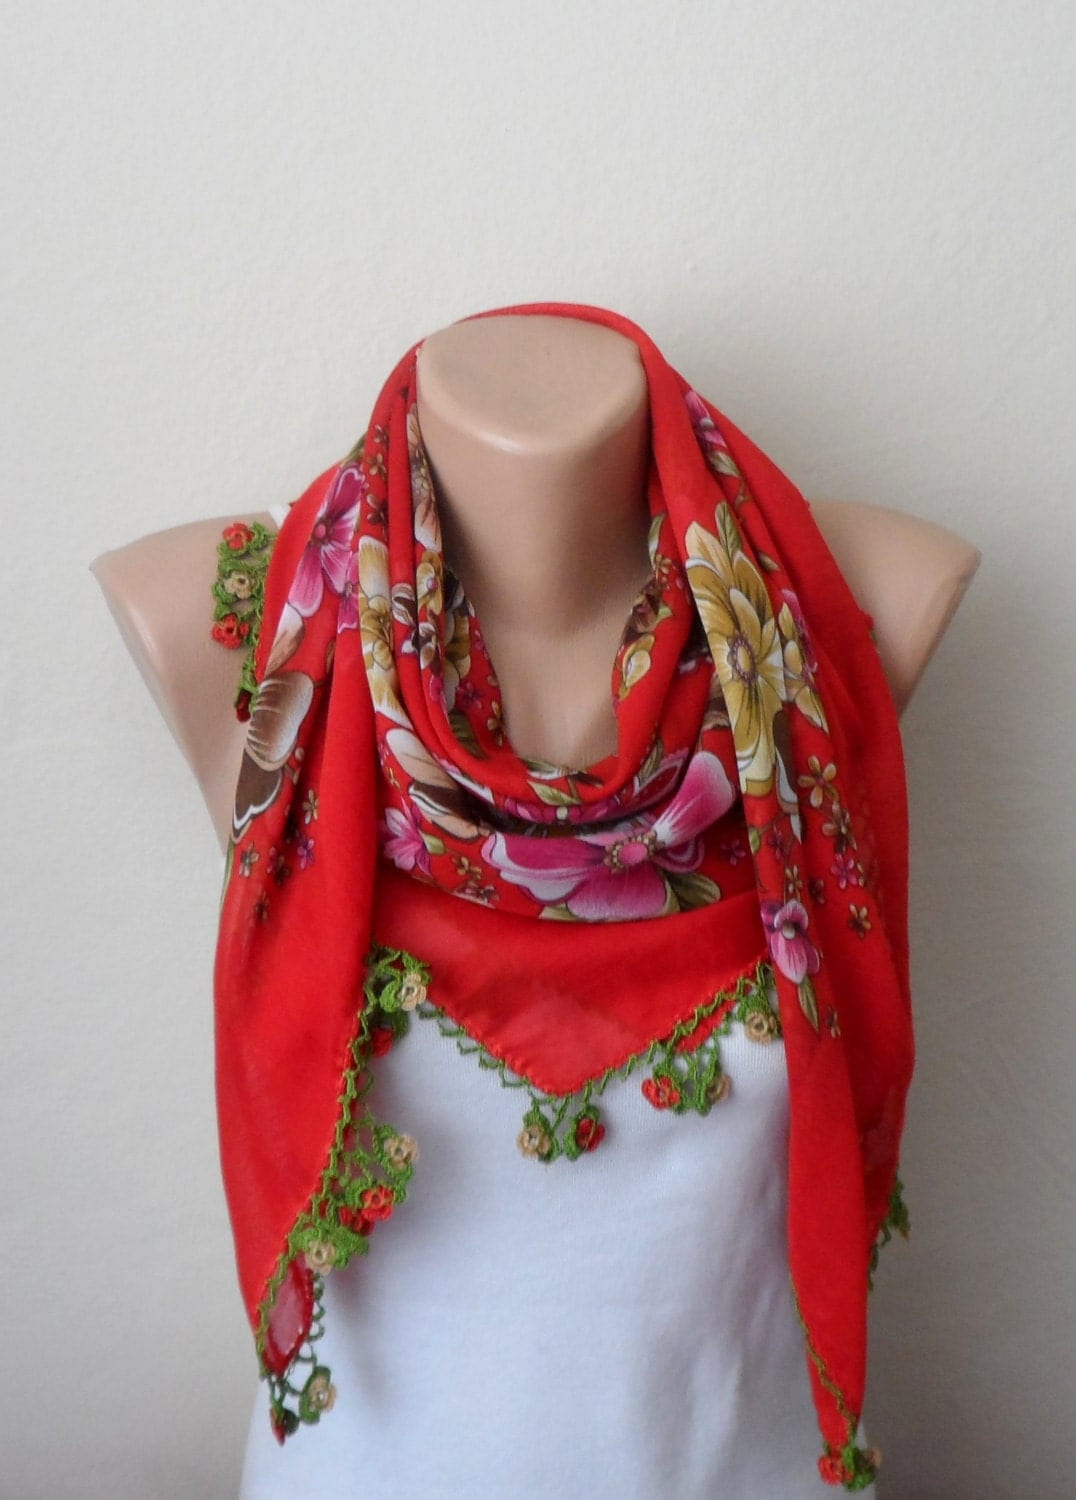 FashionAnything is an online wholesale scarves store featuring Scarves, Pashminas, Shawls, Wraps,Cashmere Feel Scarves and accessories. Wholesale pashmina direct from factory! Our Pashmina Scarves which are made of high quality grade A materials and perfect for retailers, re-sellers, daily wearing, gifts, wedding, etc.